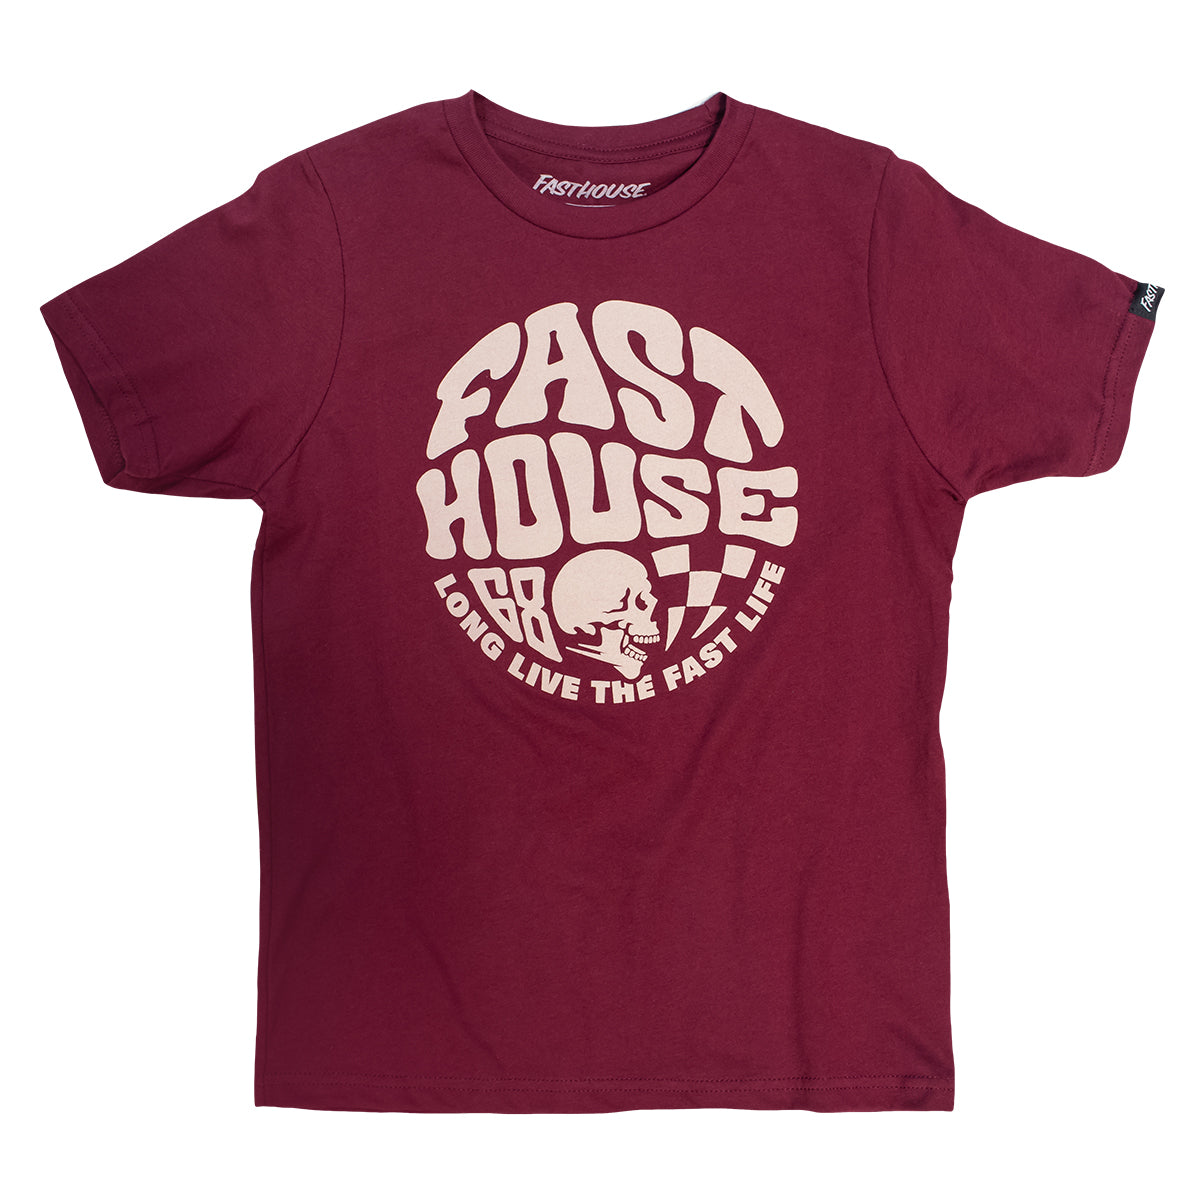 Fasthouse - Waxed Youth Tee - Maroon